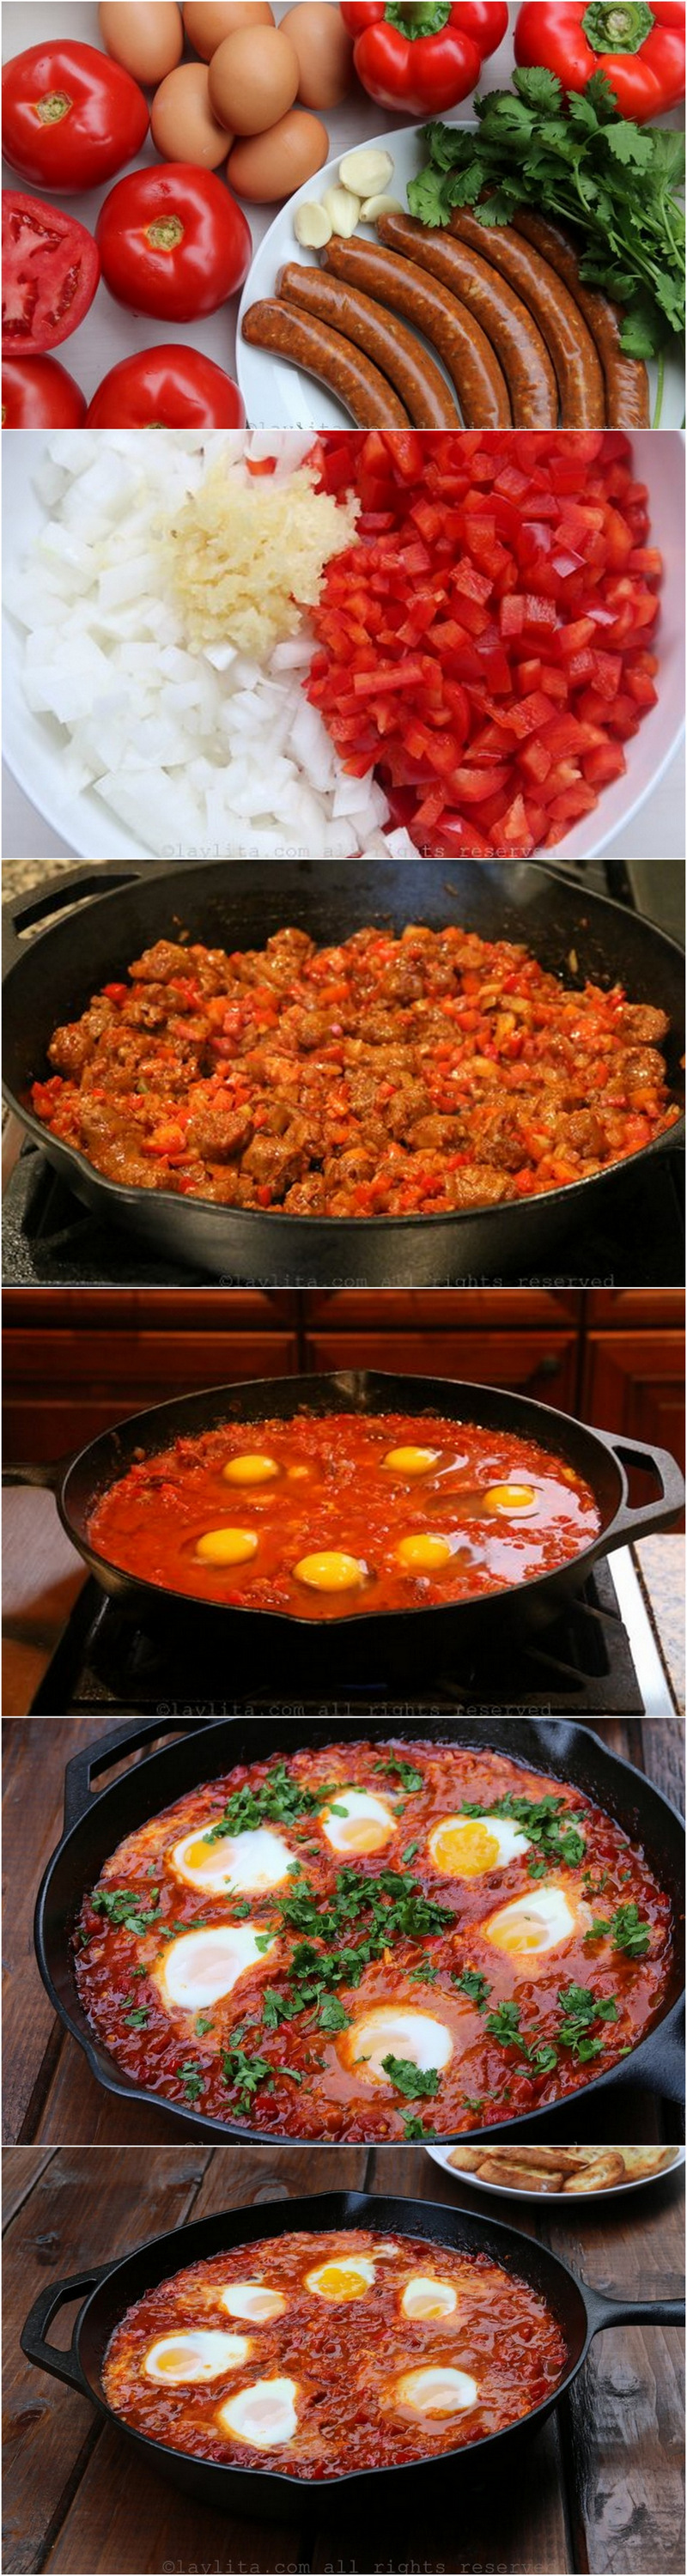 How to make shakshuka with chorizo or merguez